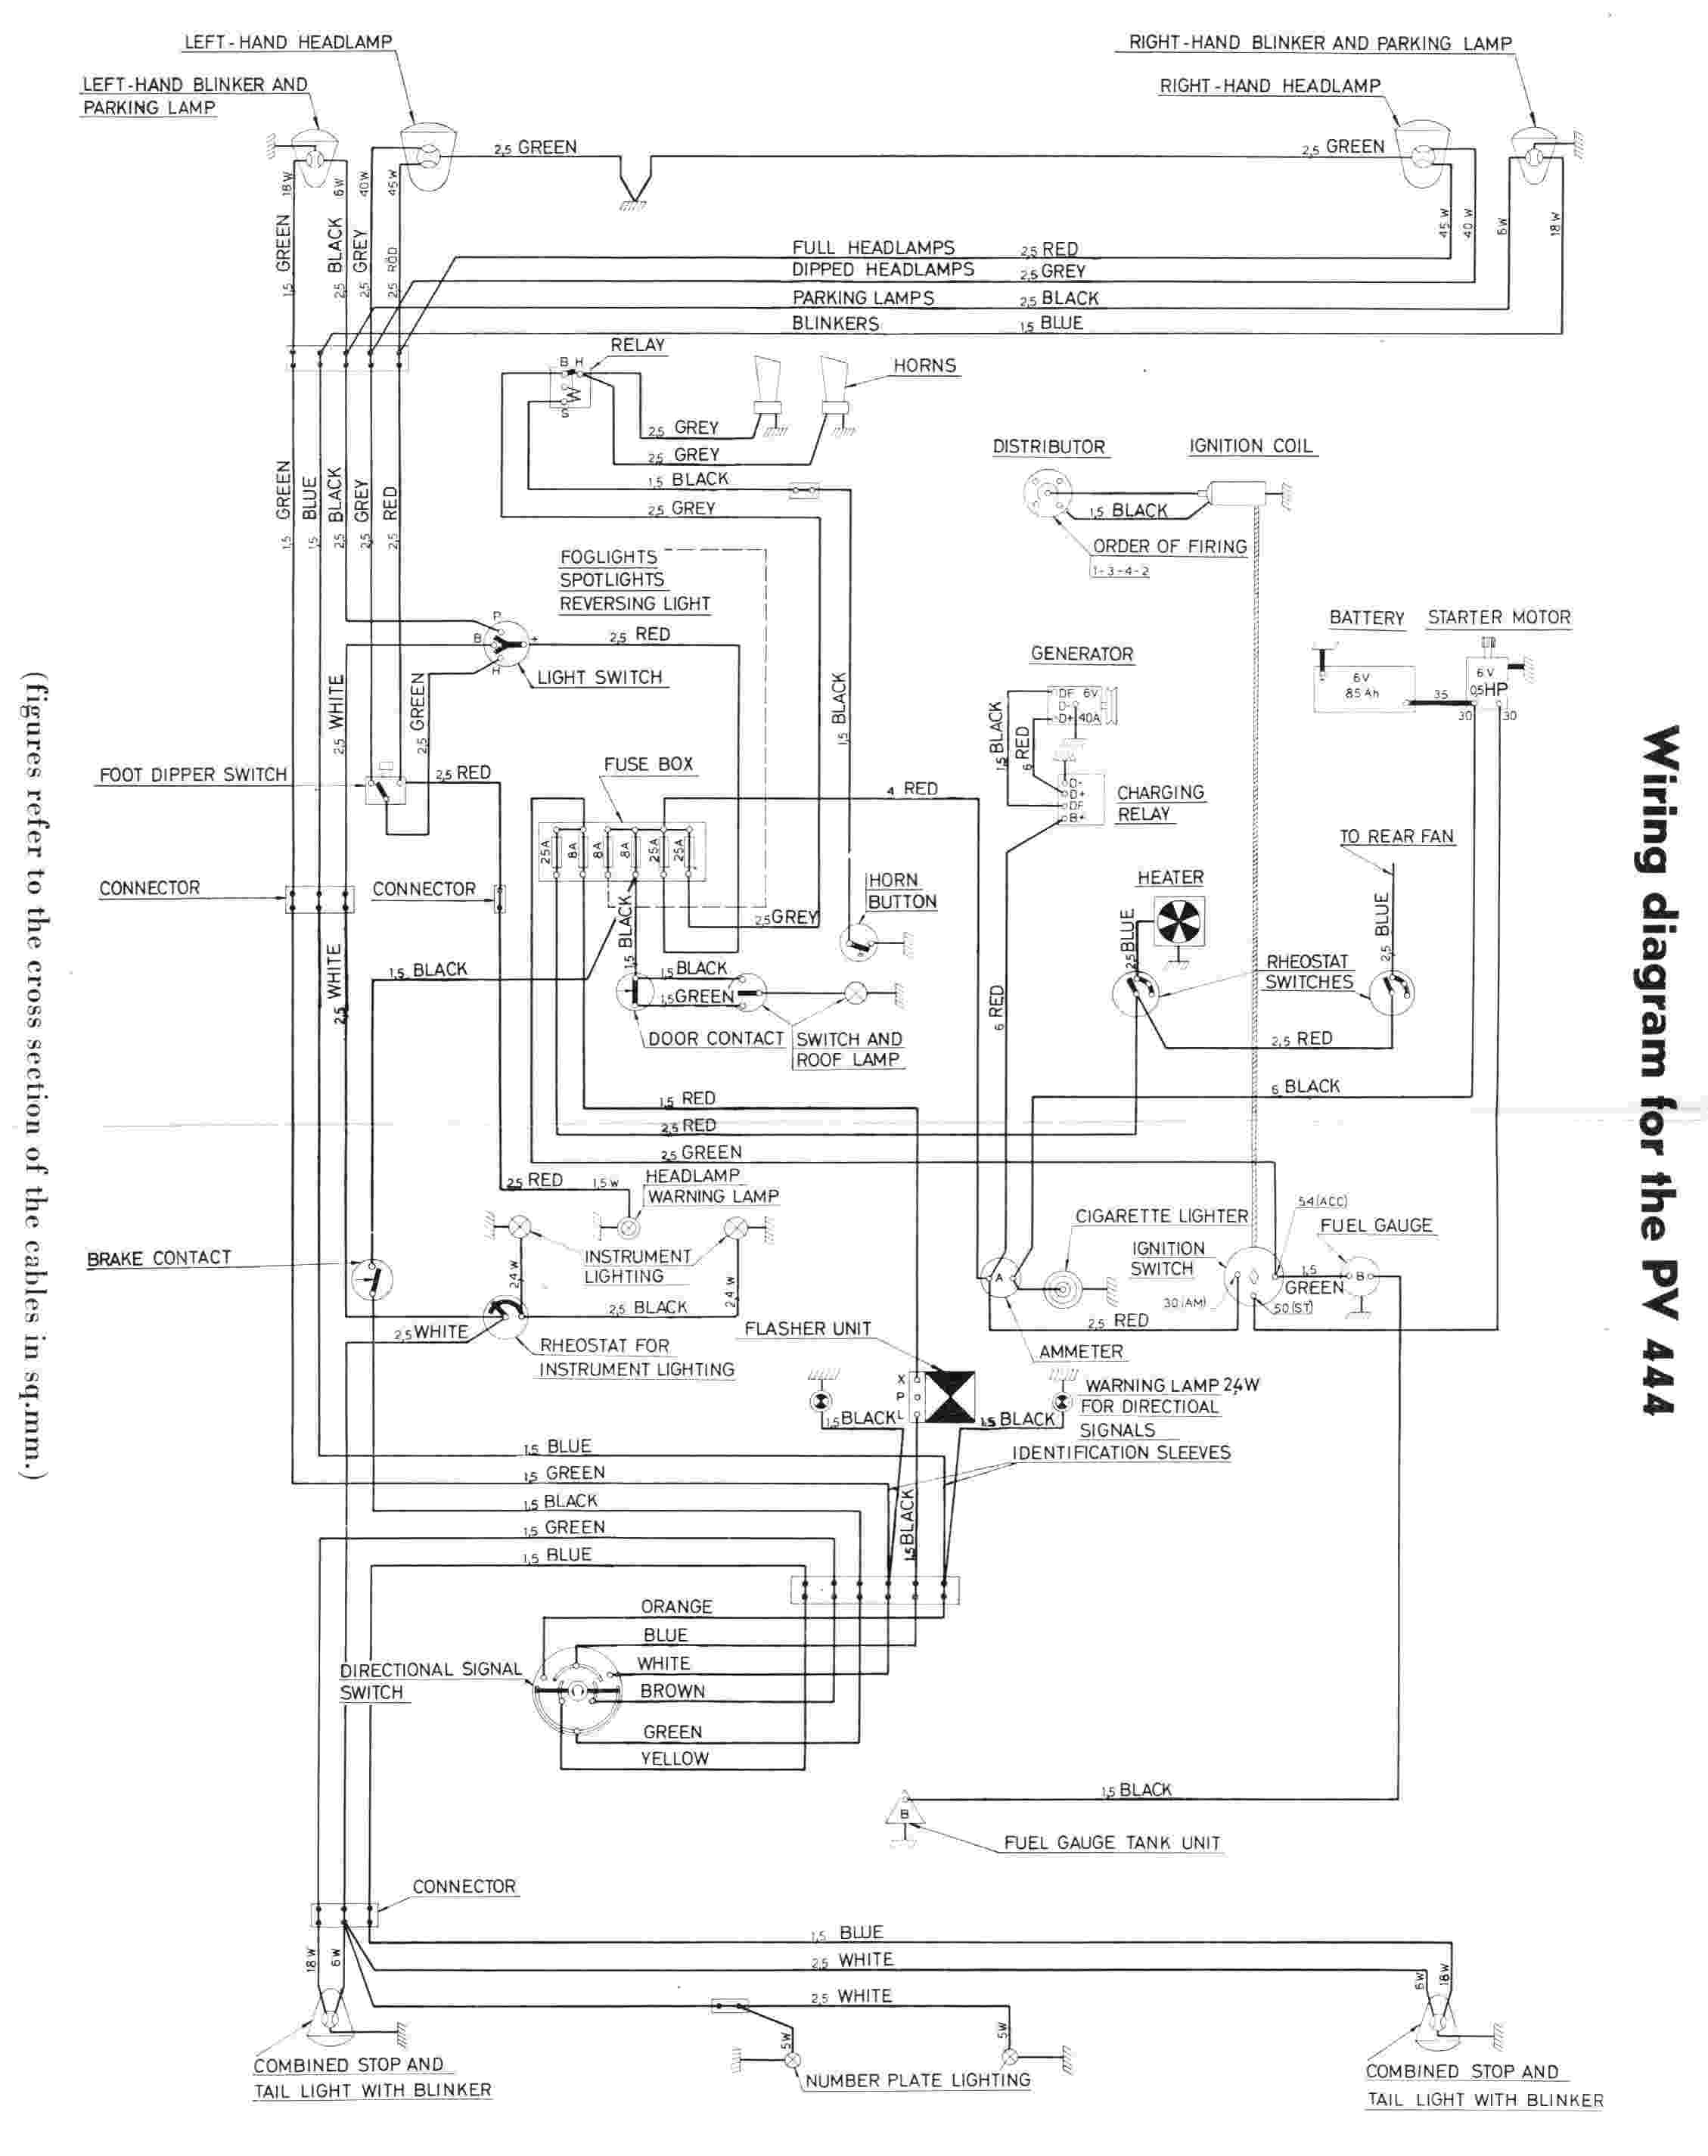 hight resolution of volvo 780 wiring diagram wiring diagram todays2012 volvo truck wiring diagrams free box wiring diagram volvo